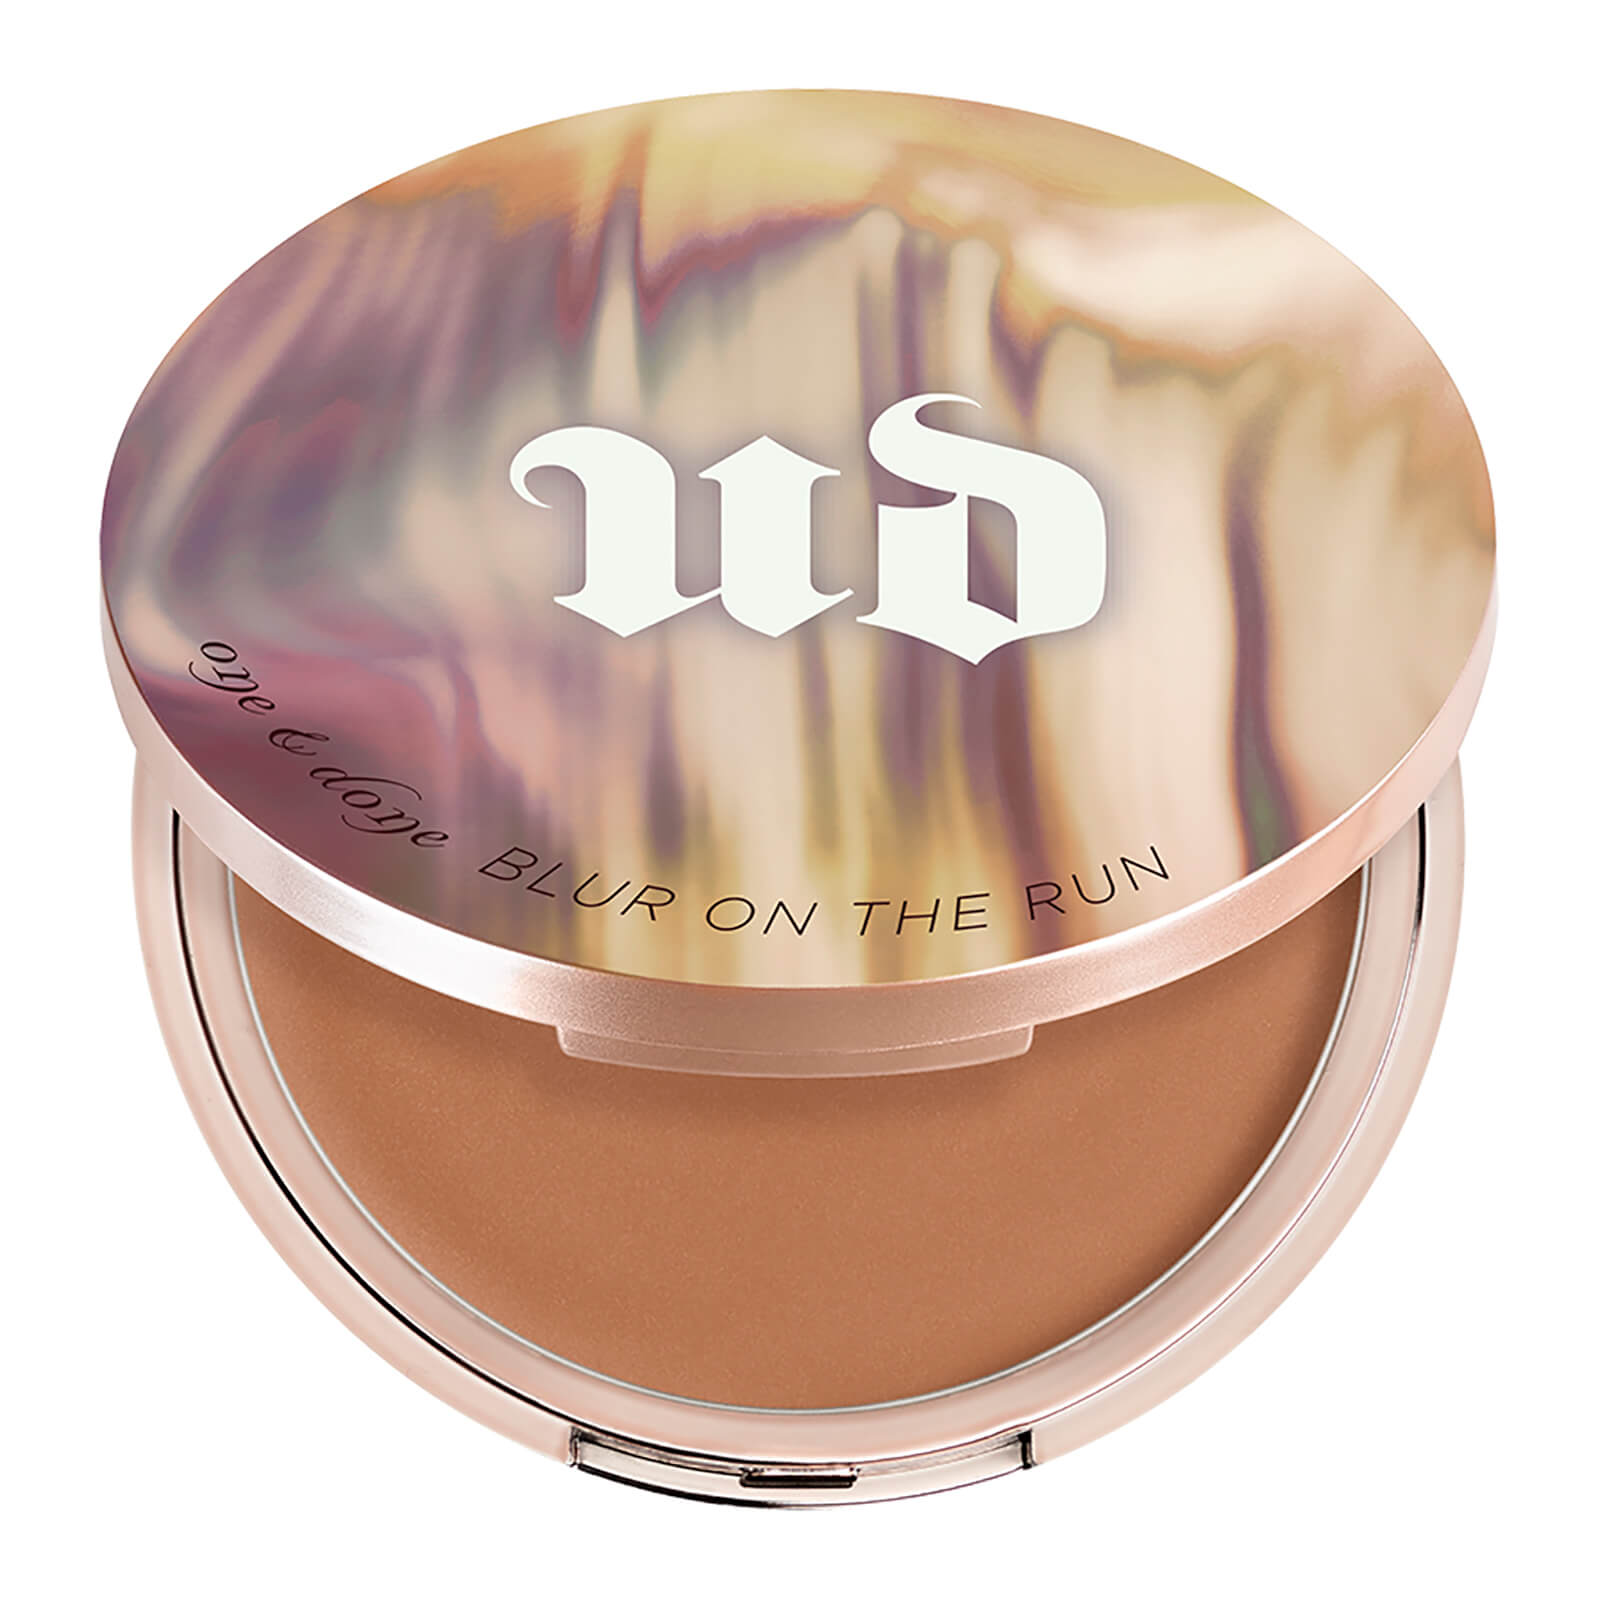 Urban Decay Naked One and Done Blur on the Run Face Powder - Shade 2